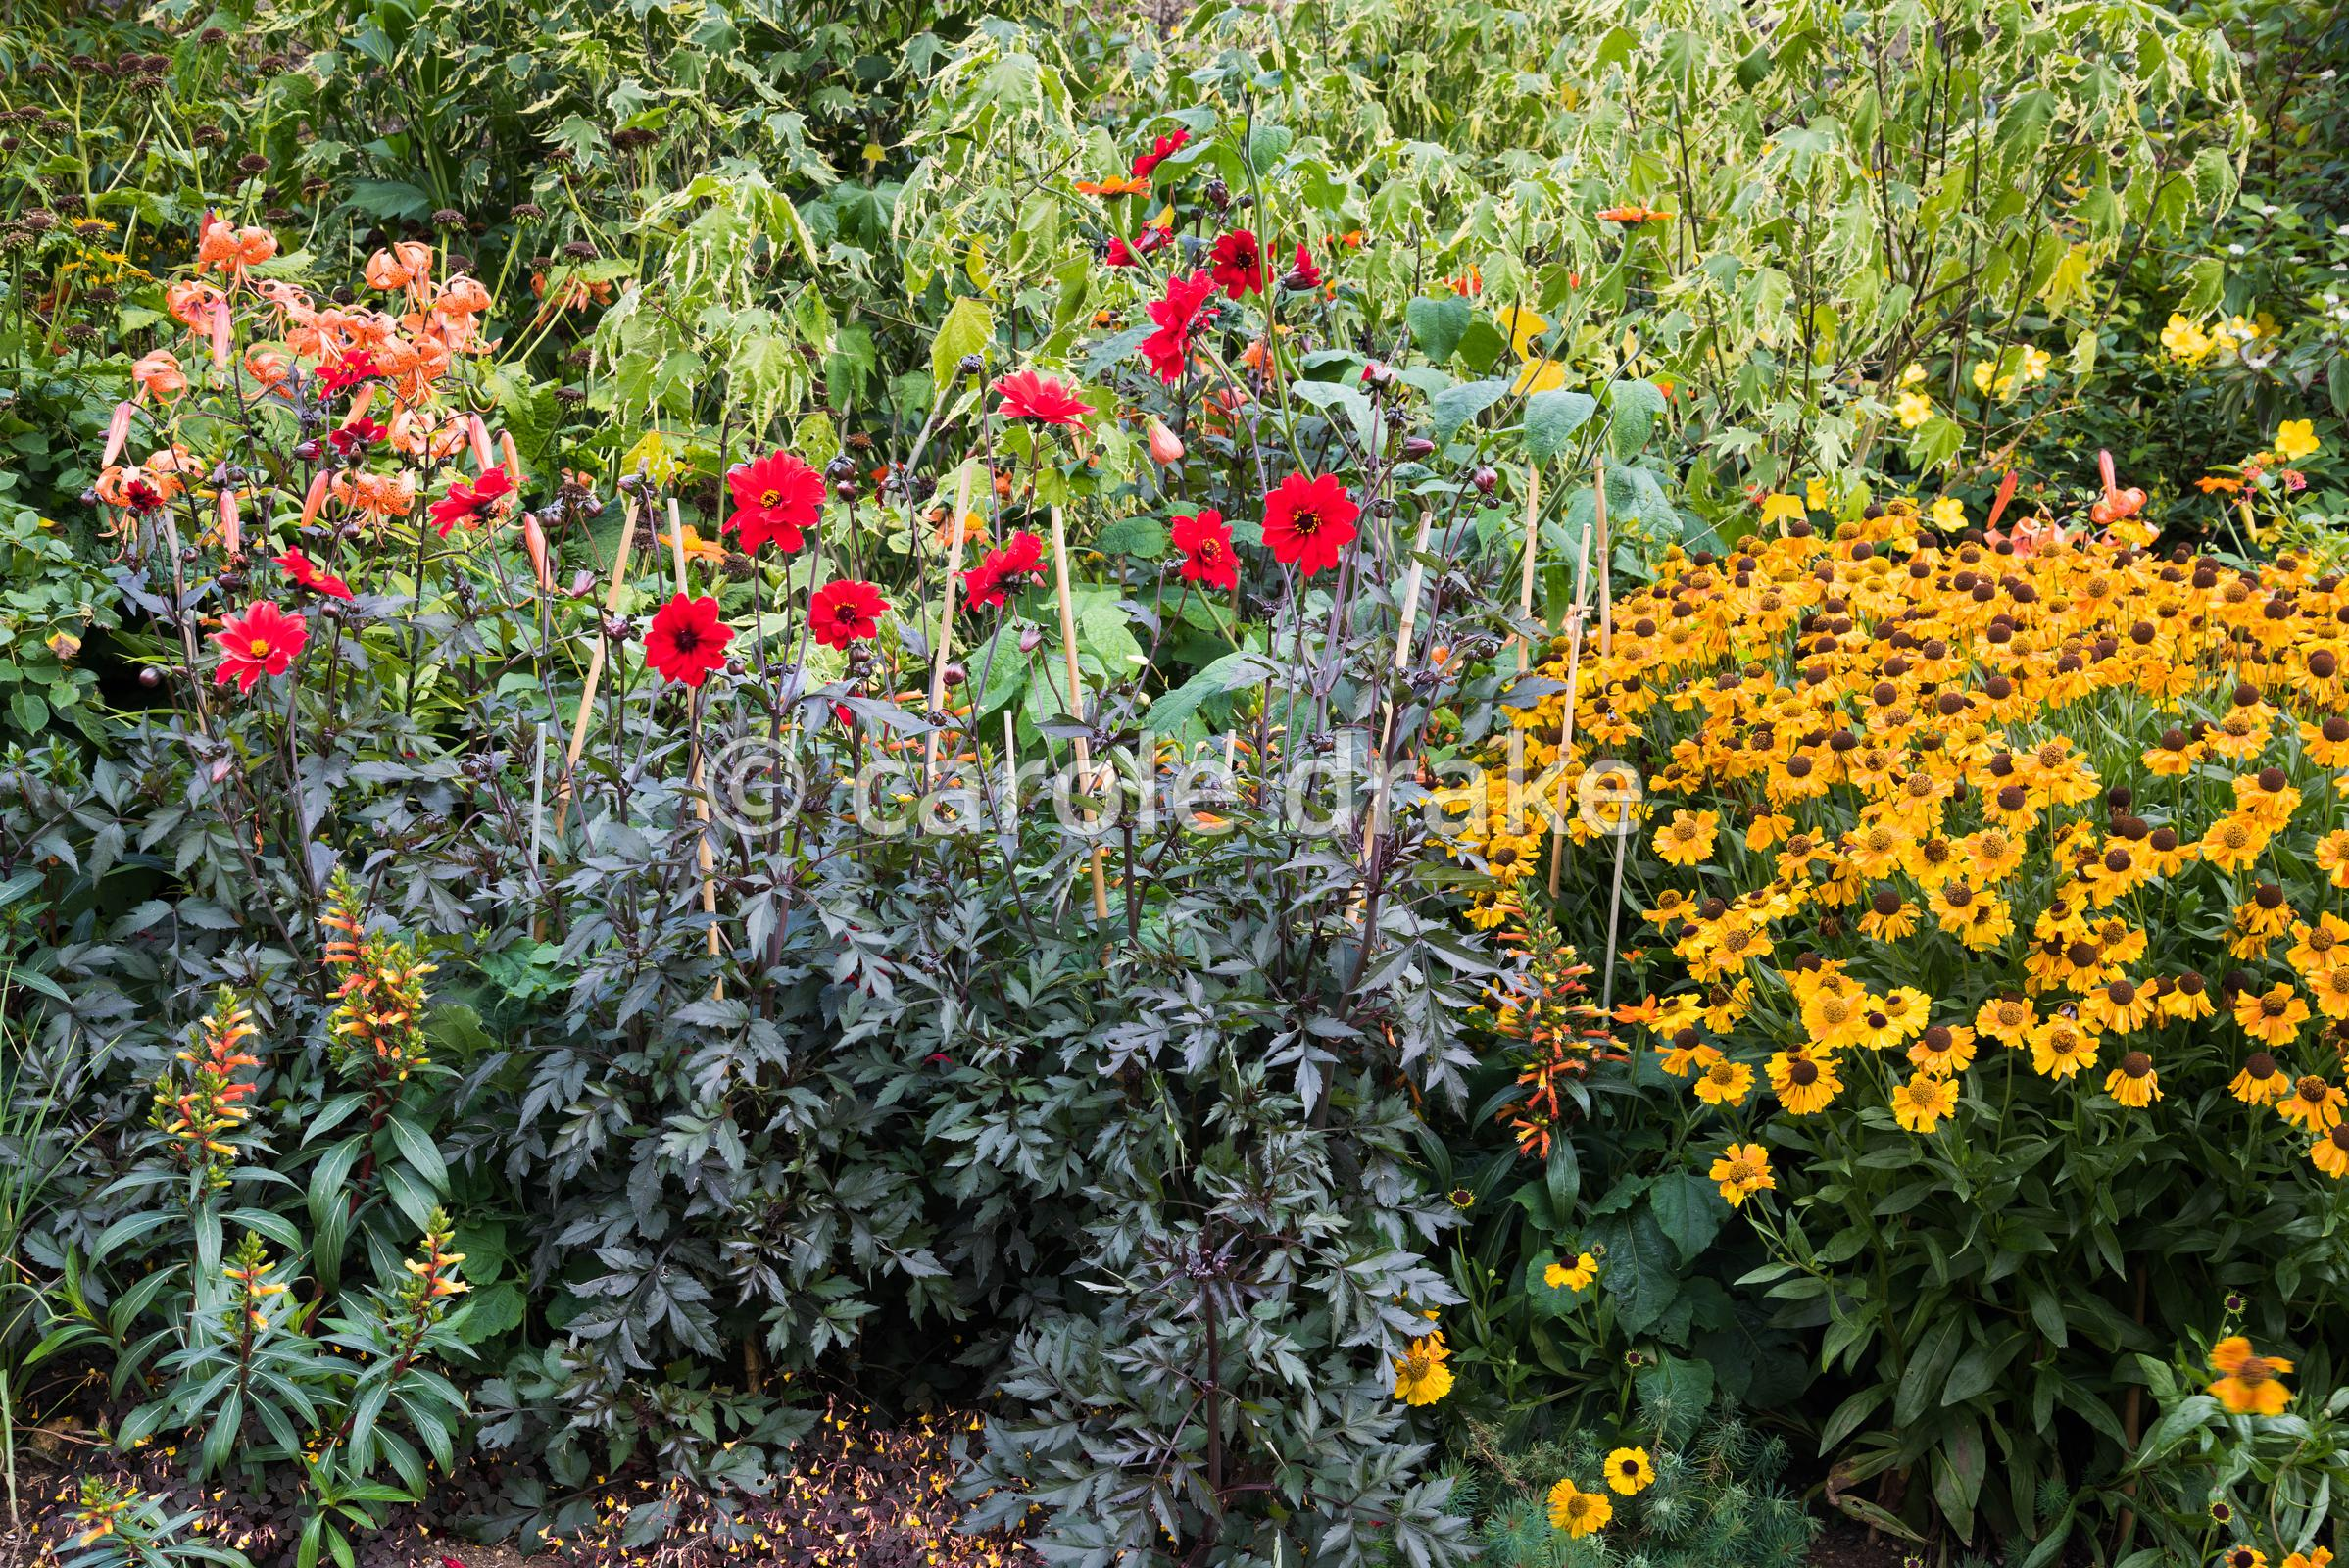 Late summer border at Bourton House, Moreton-in-Marsh in August including Dahlia 'Bishop of Llandaff', Helenium 'Sahin's Earl...